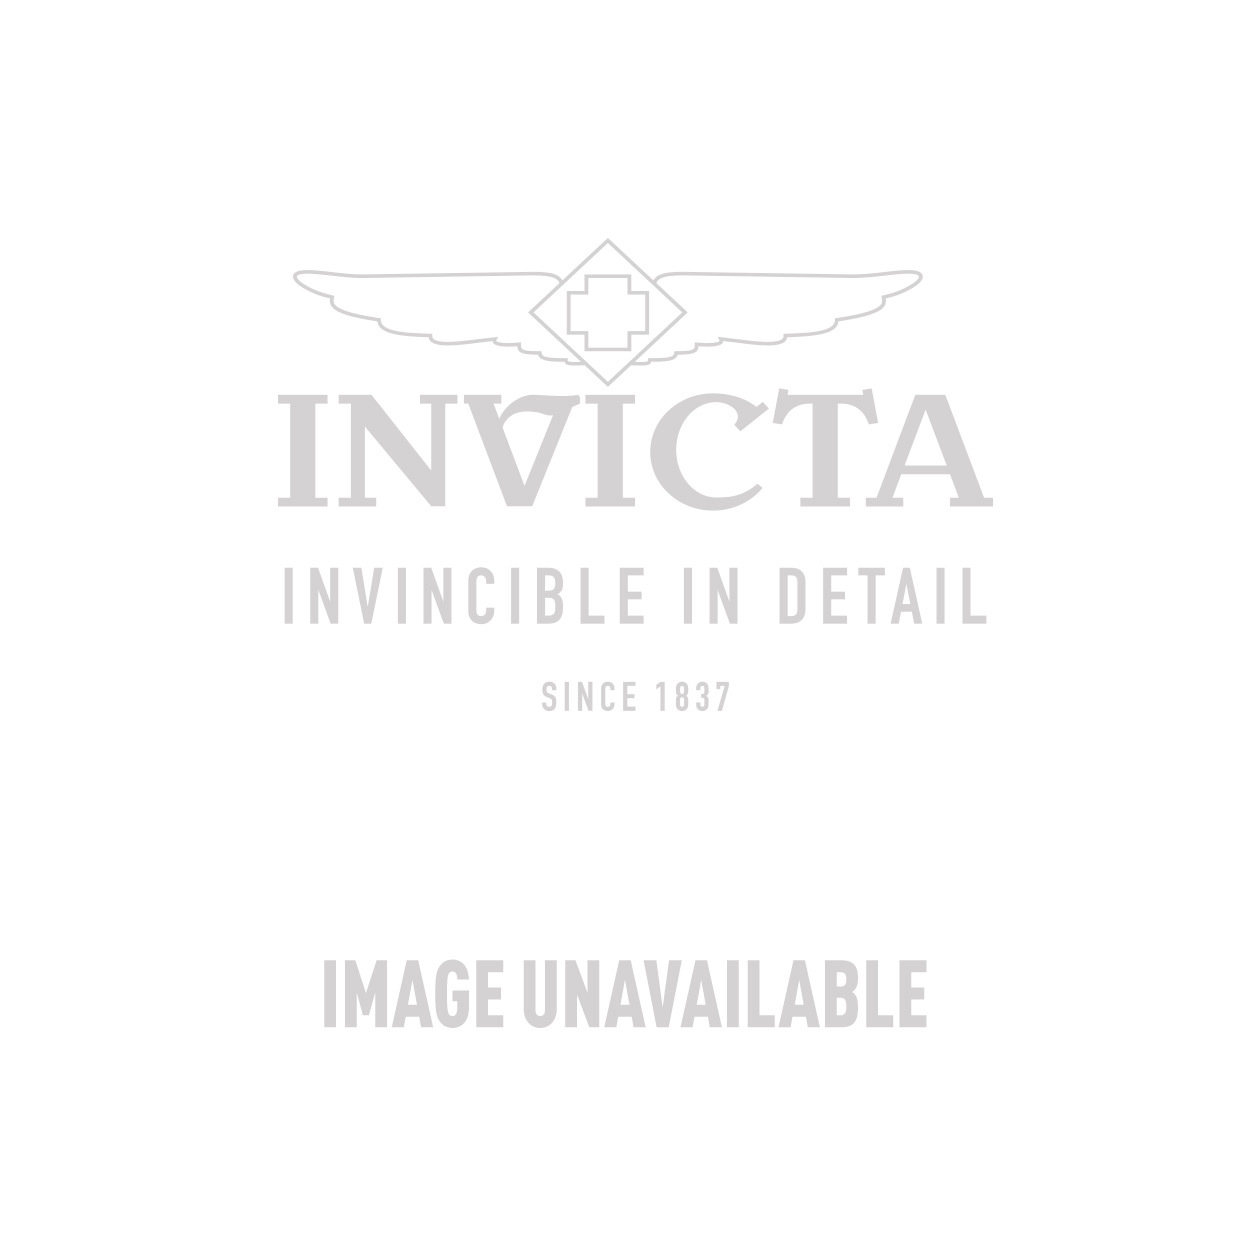 Invicta Ocean Reef  Quartz Watch - Rose Gold, White case with White tone Leather band - Model 10731